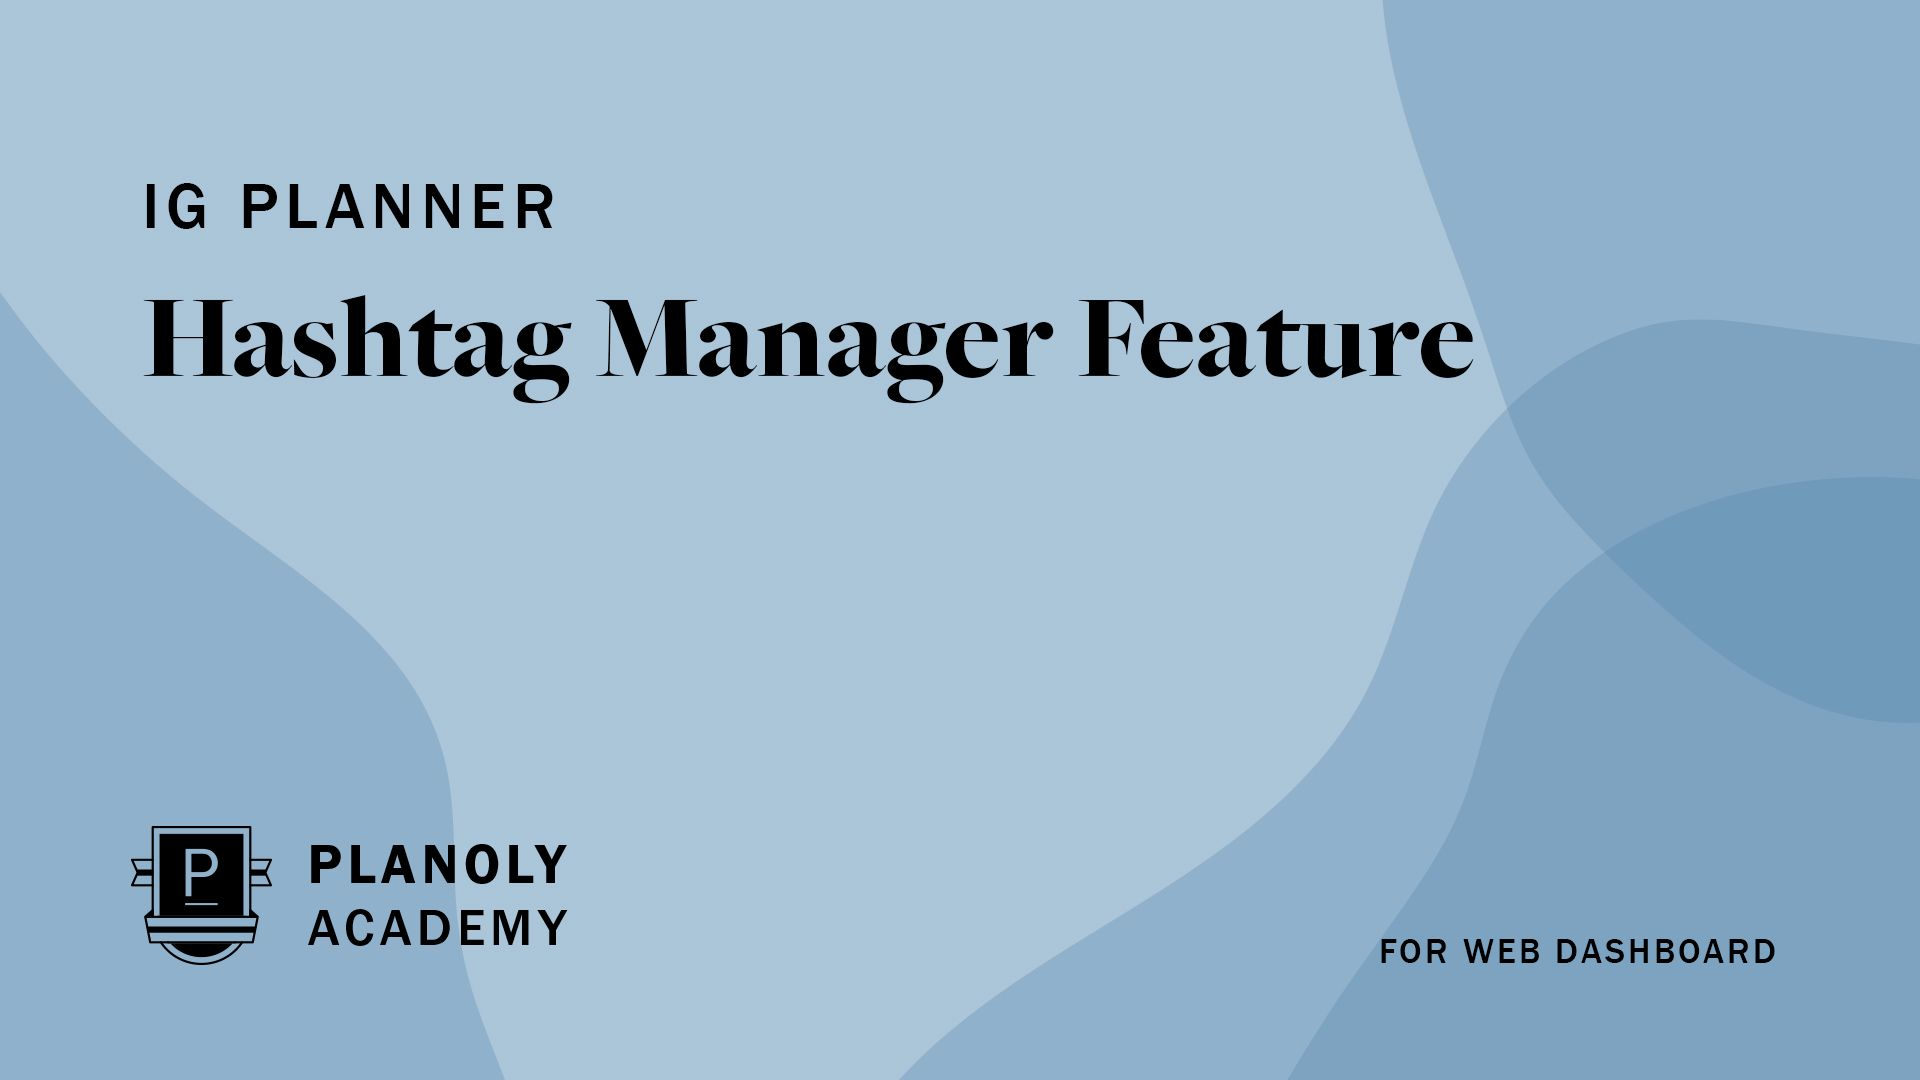 How to Use the Hashtag Manager Feature